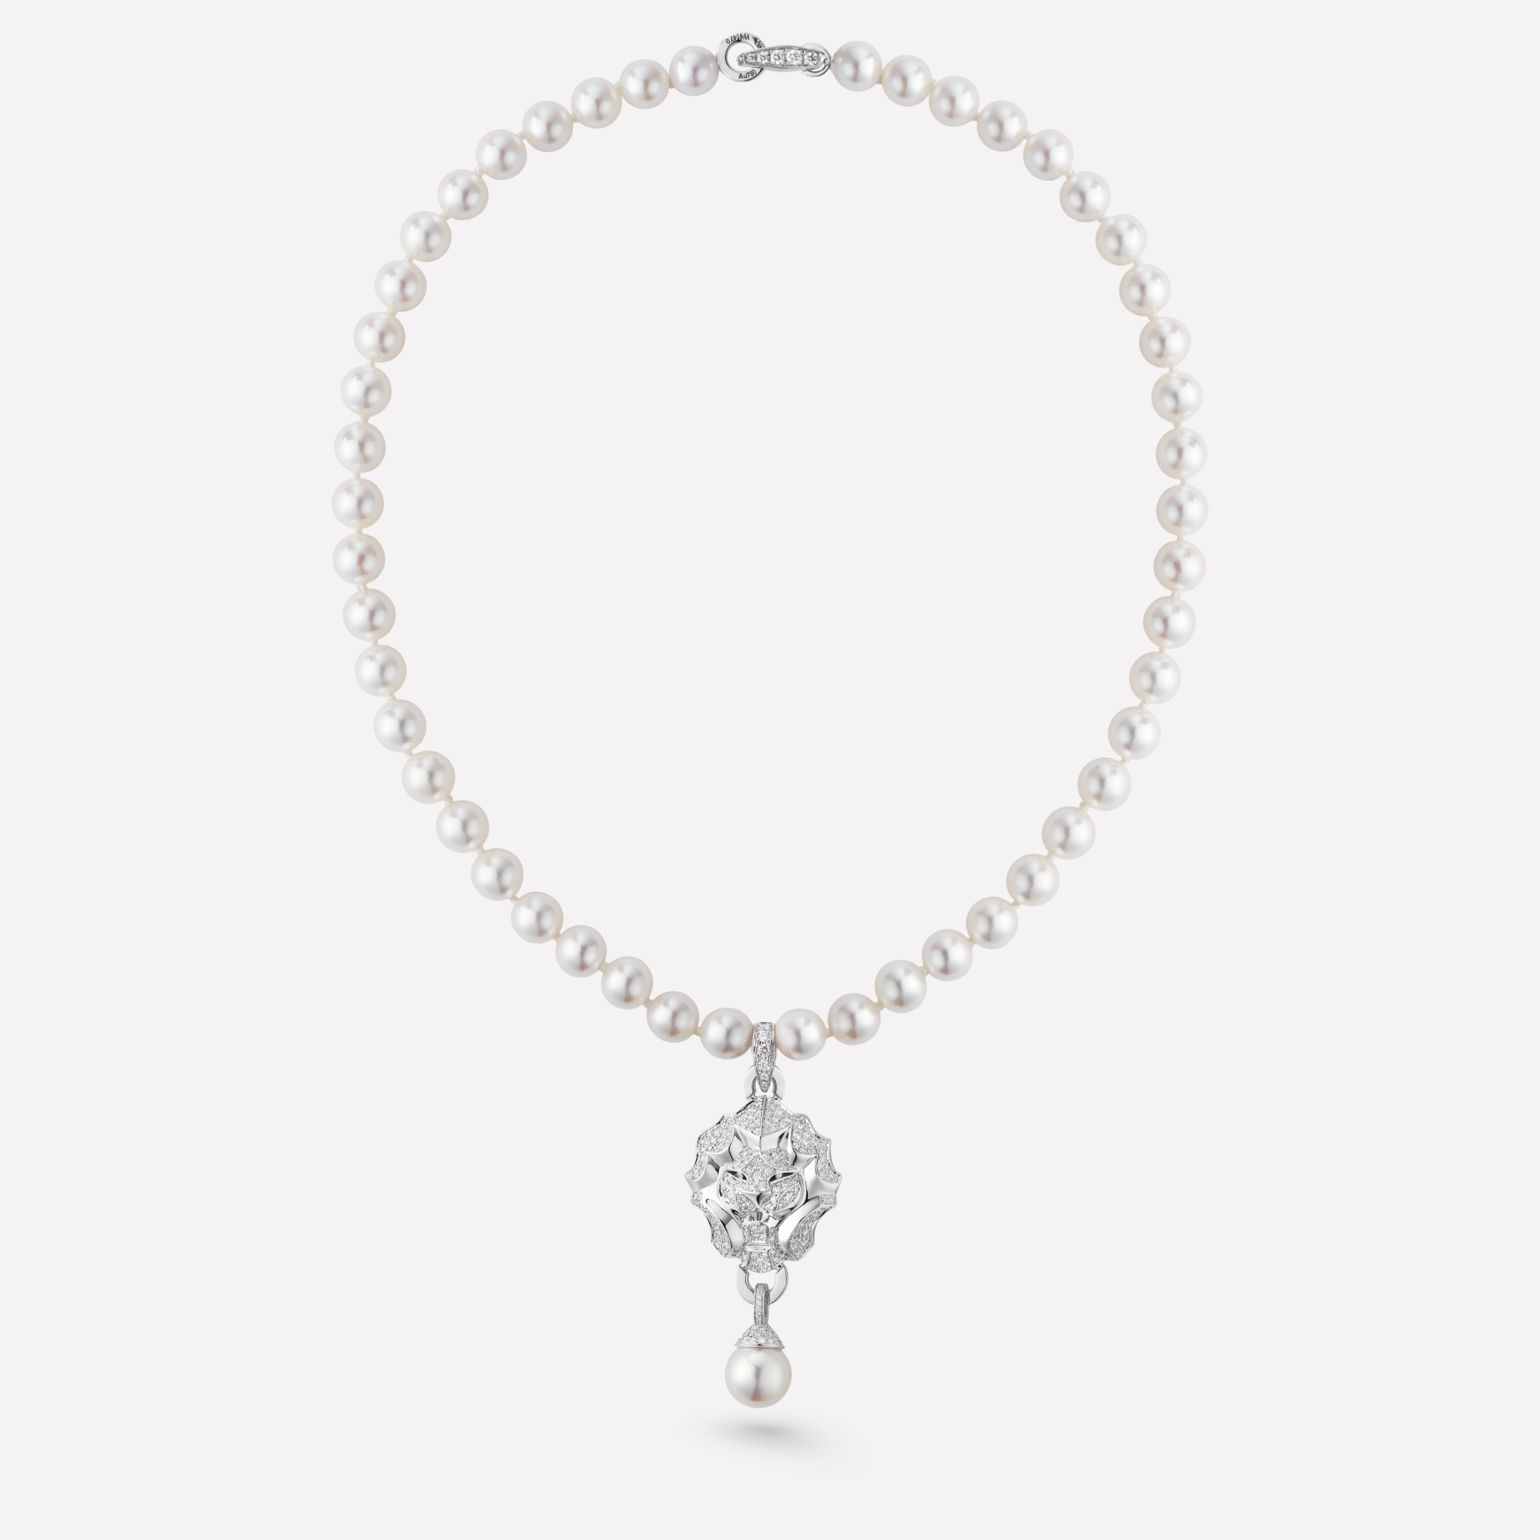 Sous le Signe du Lion Necklace Lion necklace in 18K white gold, diamonds and cultured pearls